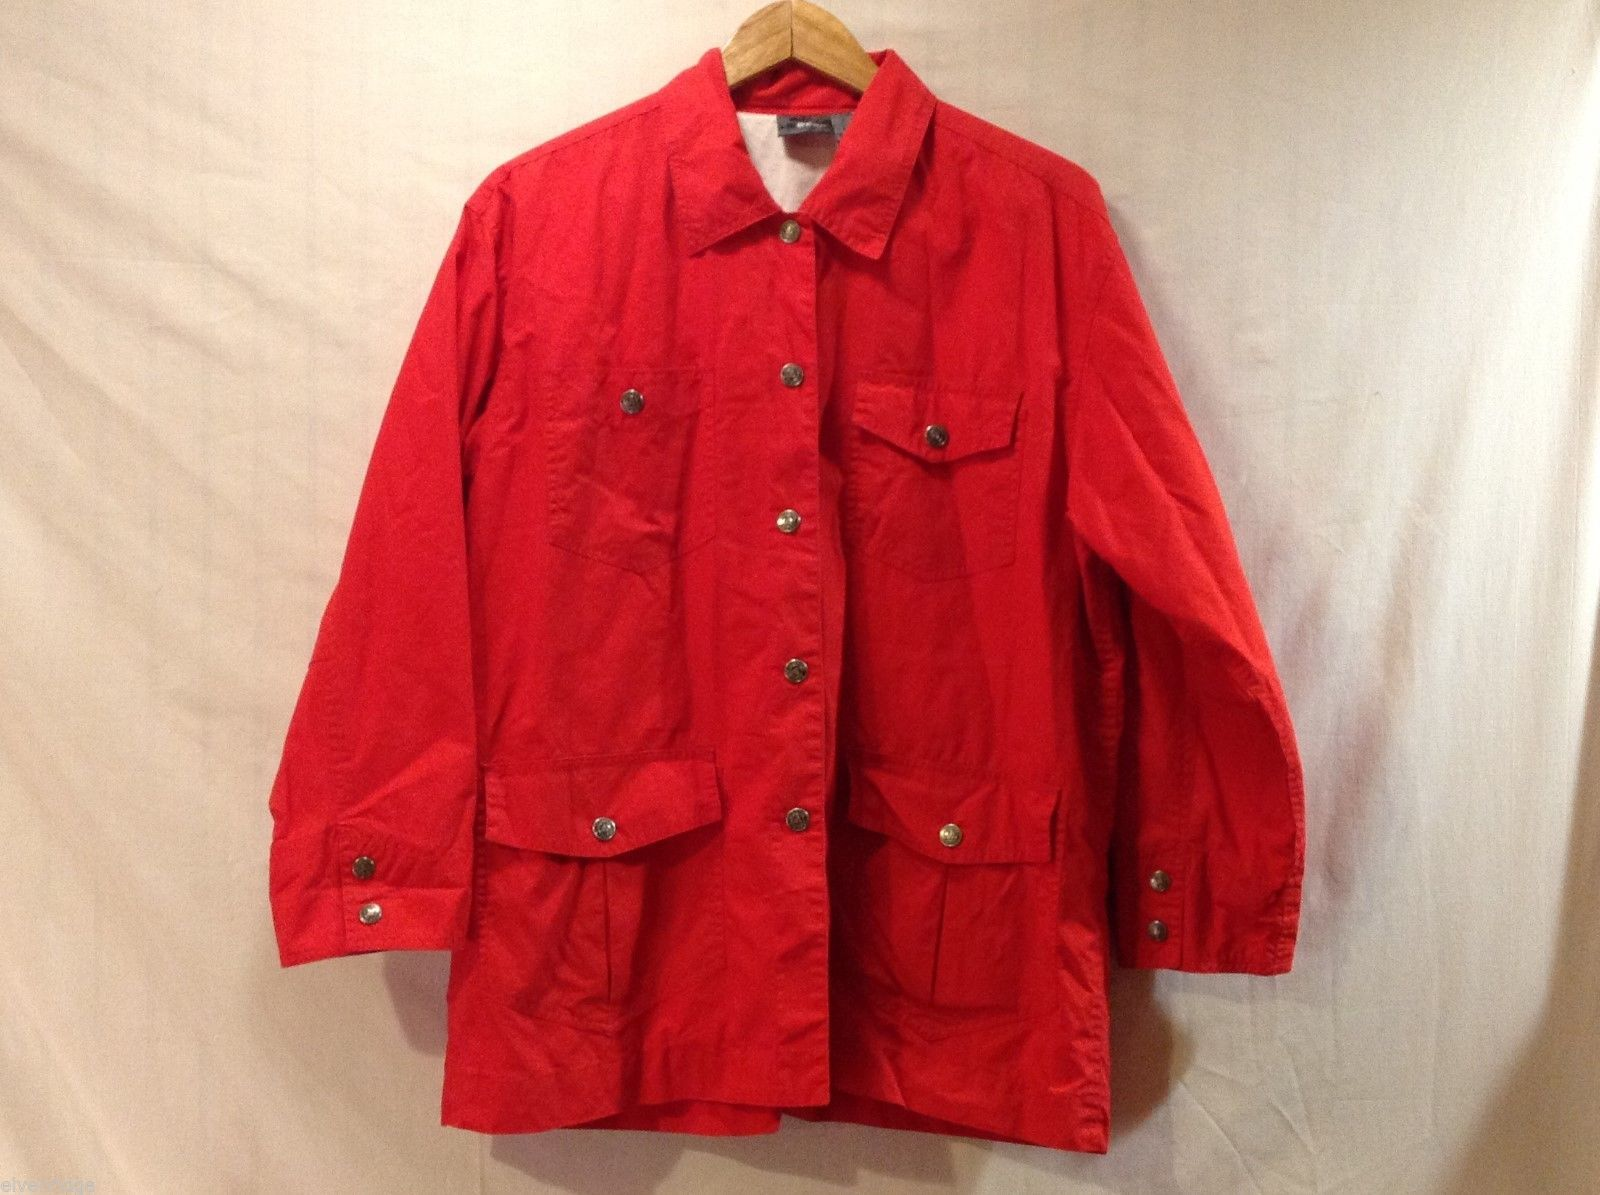 Liz Claiborne Womens Bright Red Windbreaker Jacket, Size Small